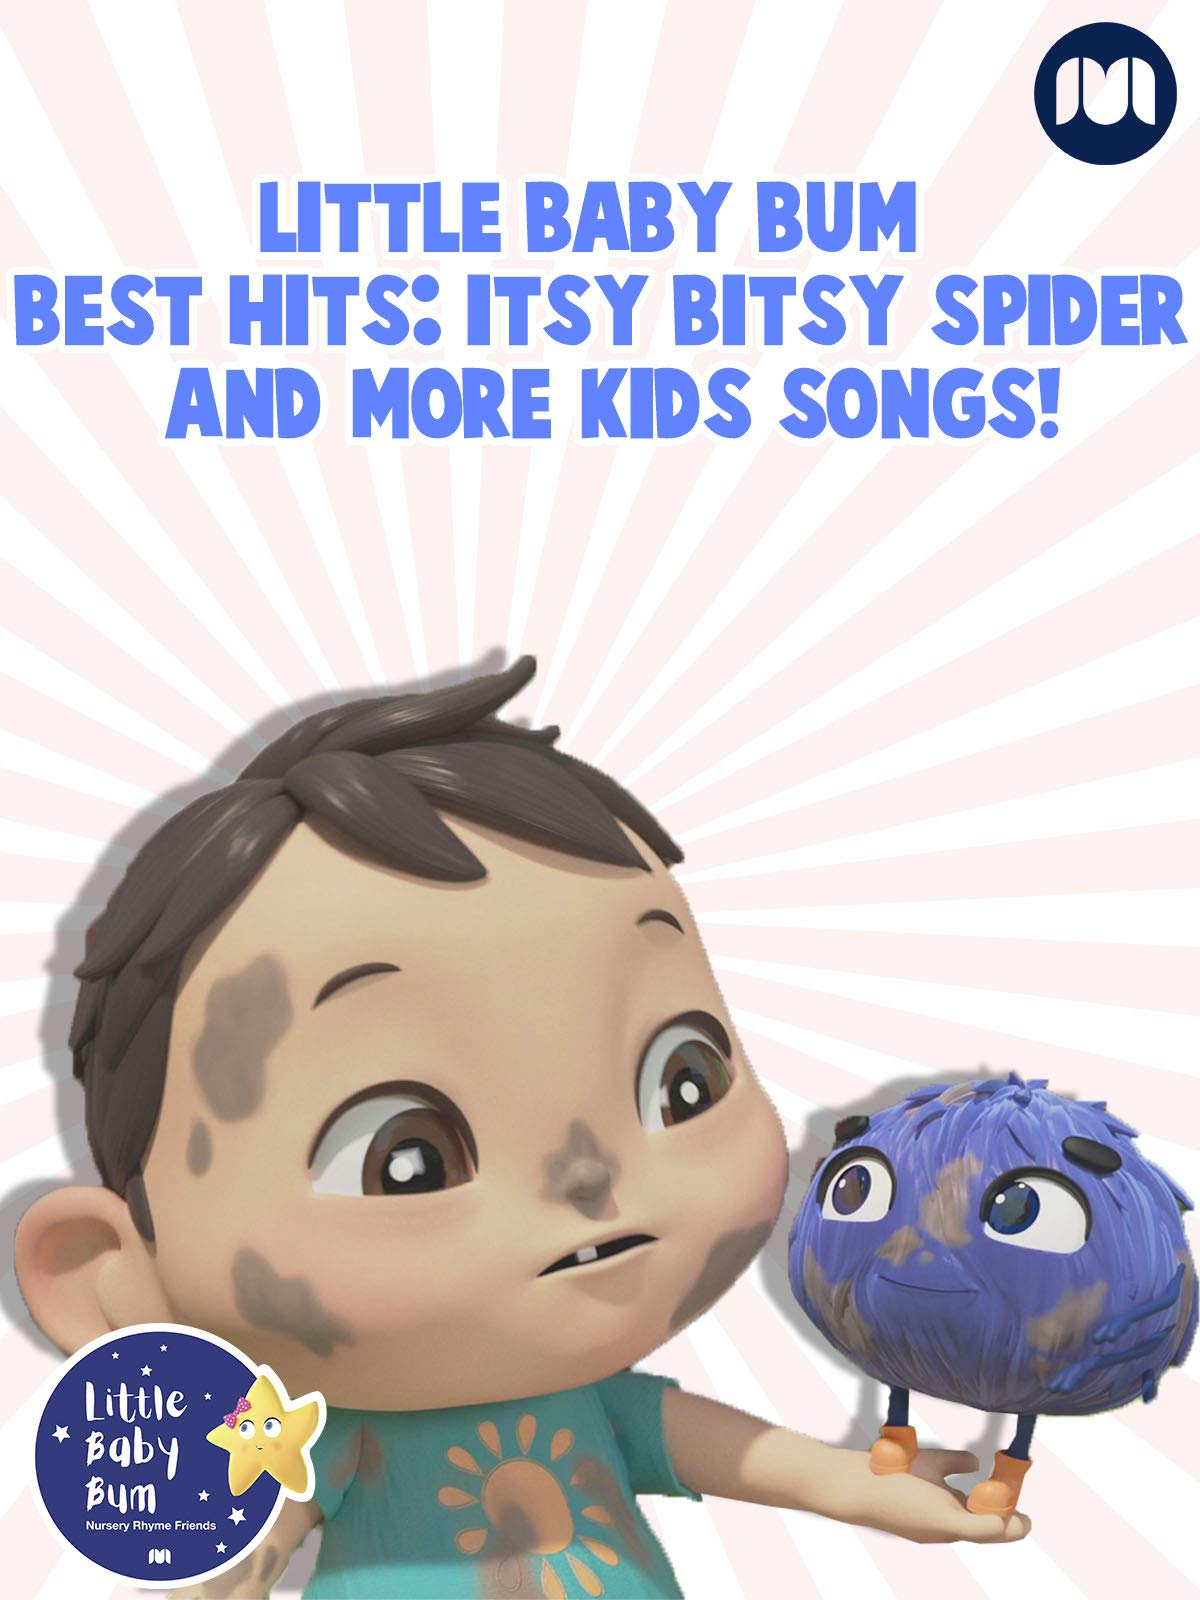 Little Baby Bum Best Hits: Itsy Bitsy Spider and More Kids Songs!